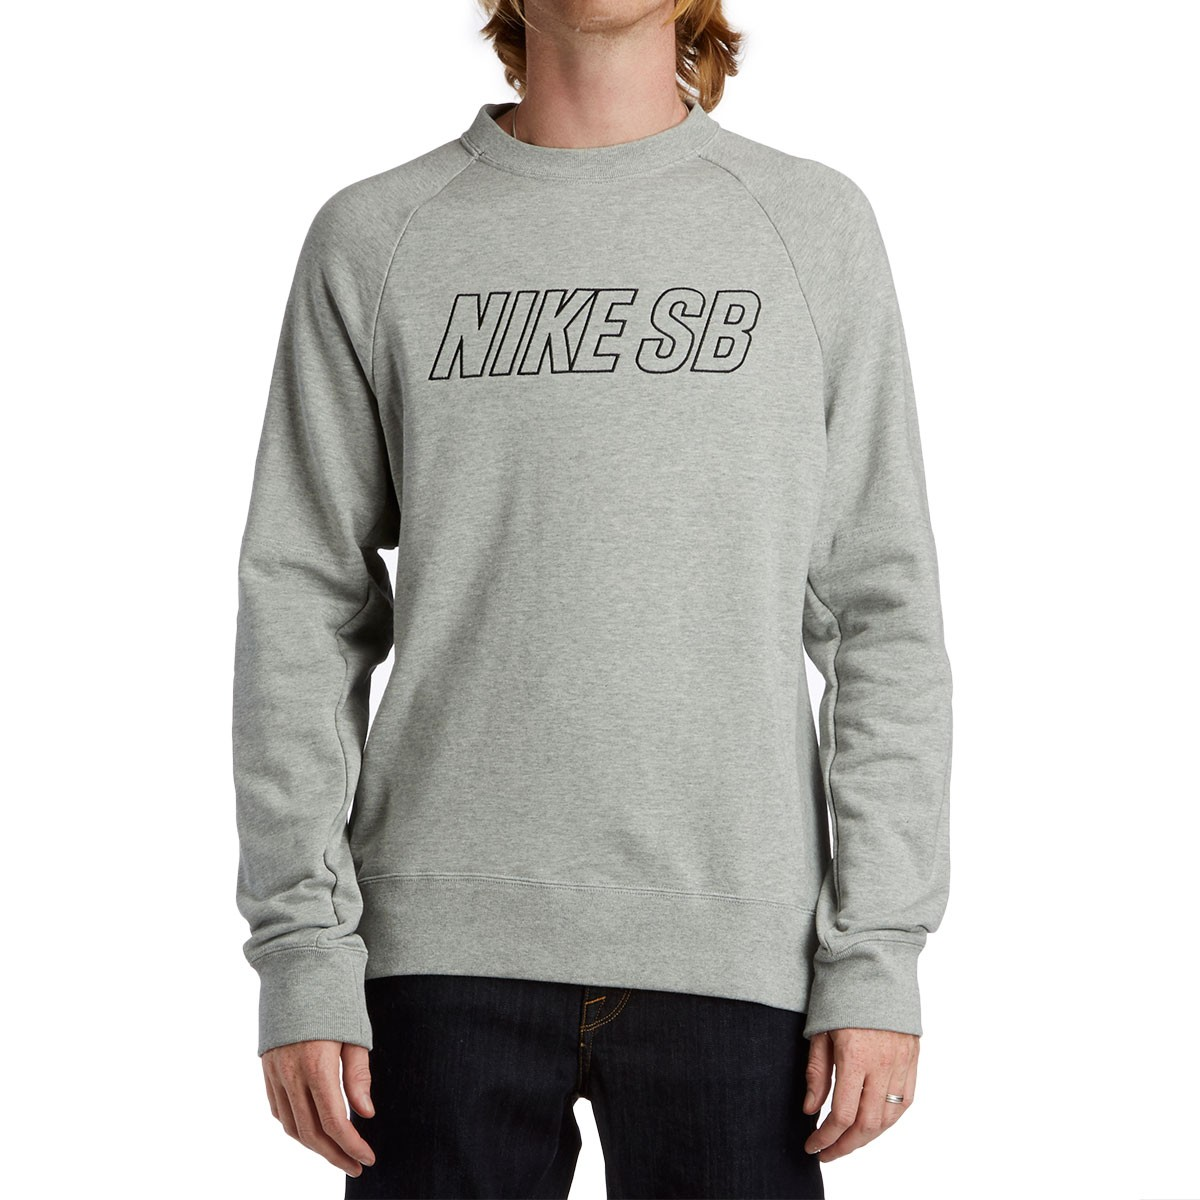 Nike Sb Everett Reveal Crew Sweatshirt Dark Grey Heather